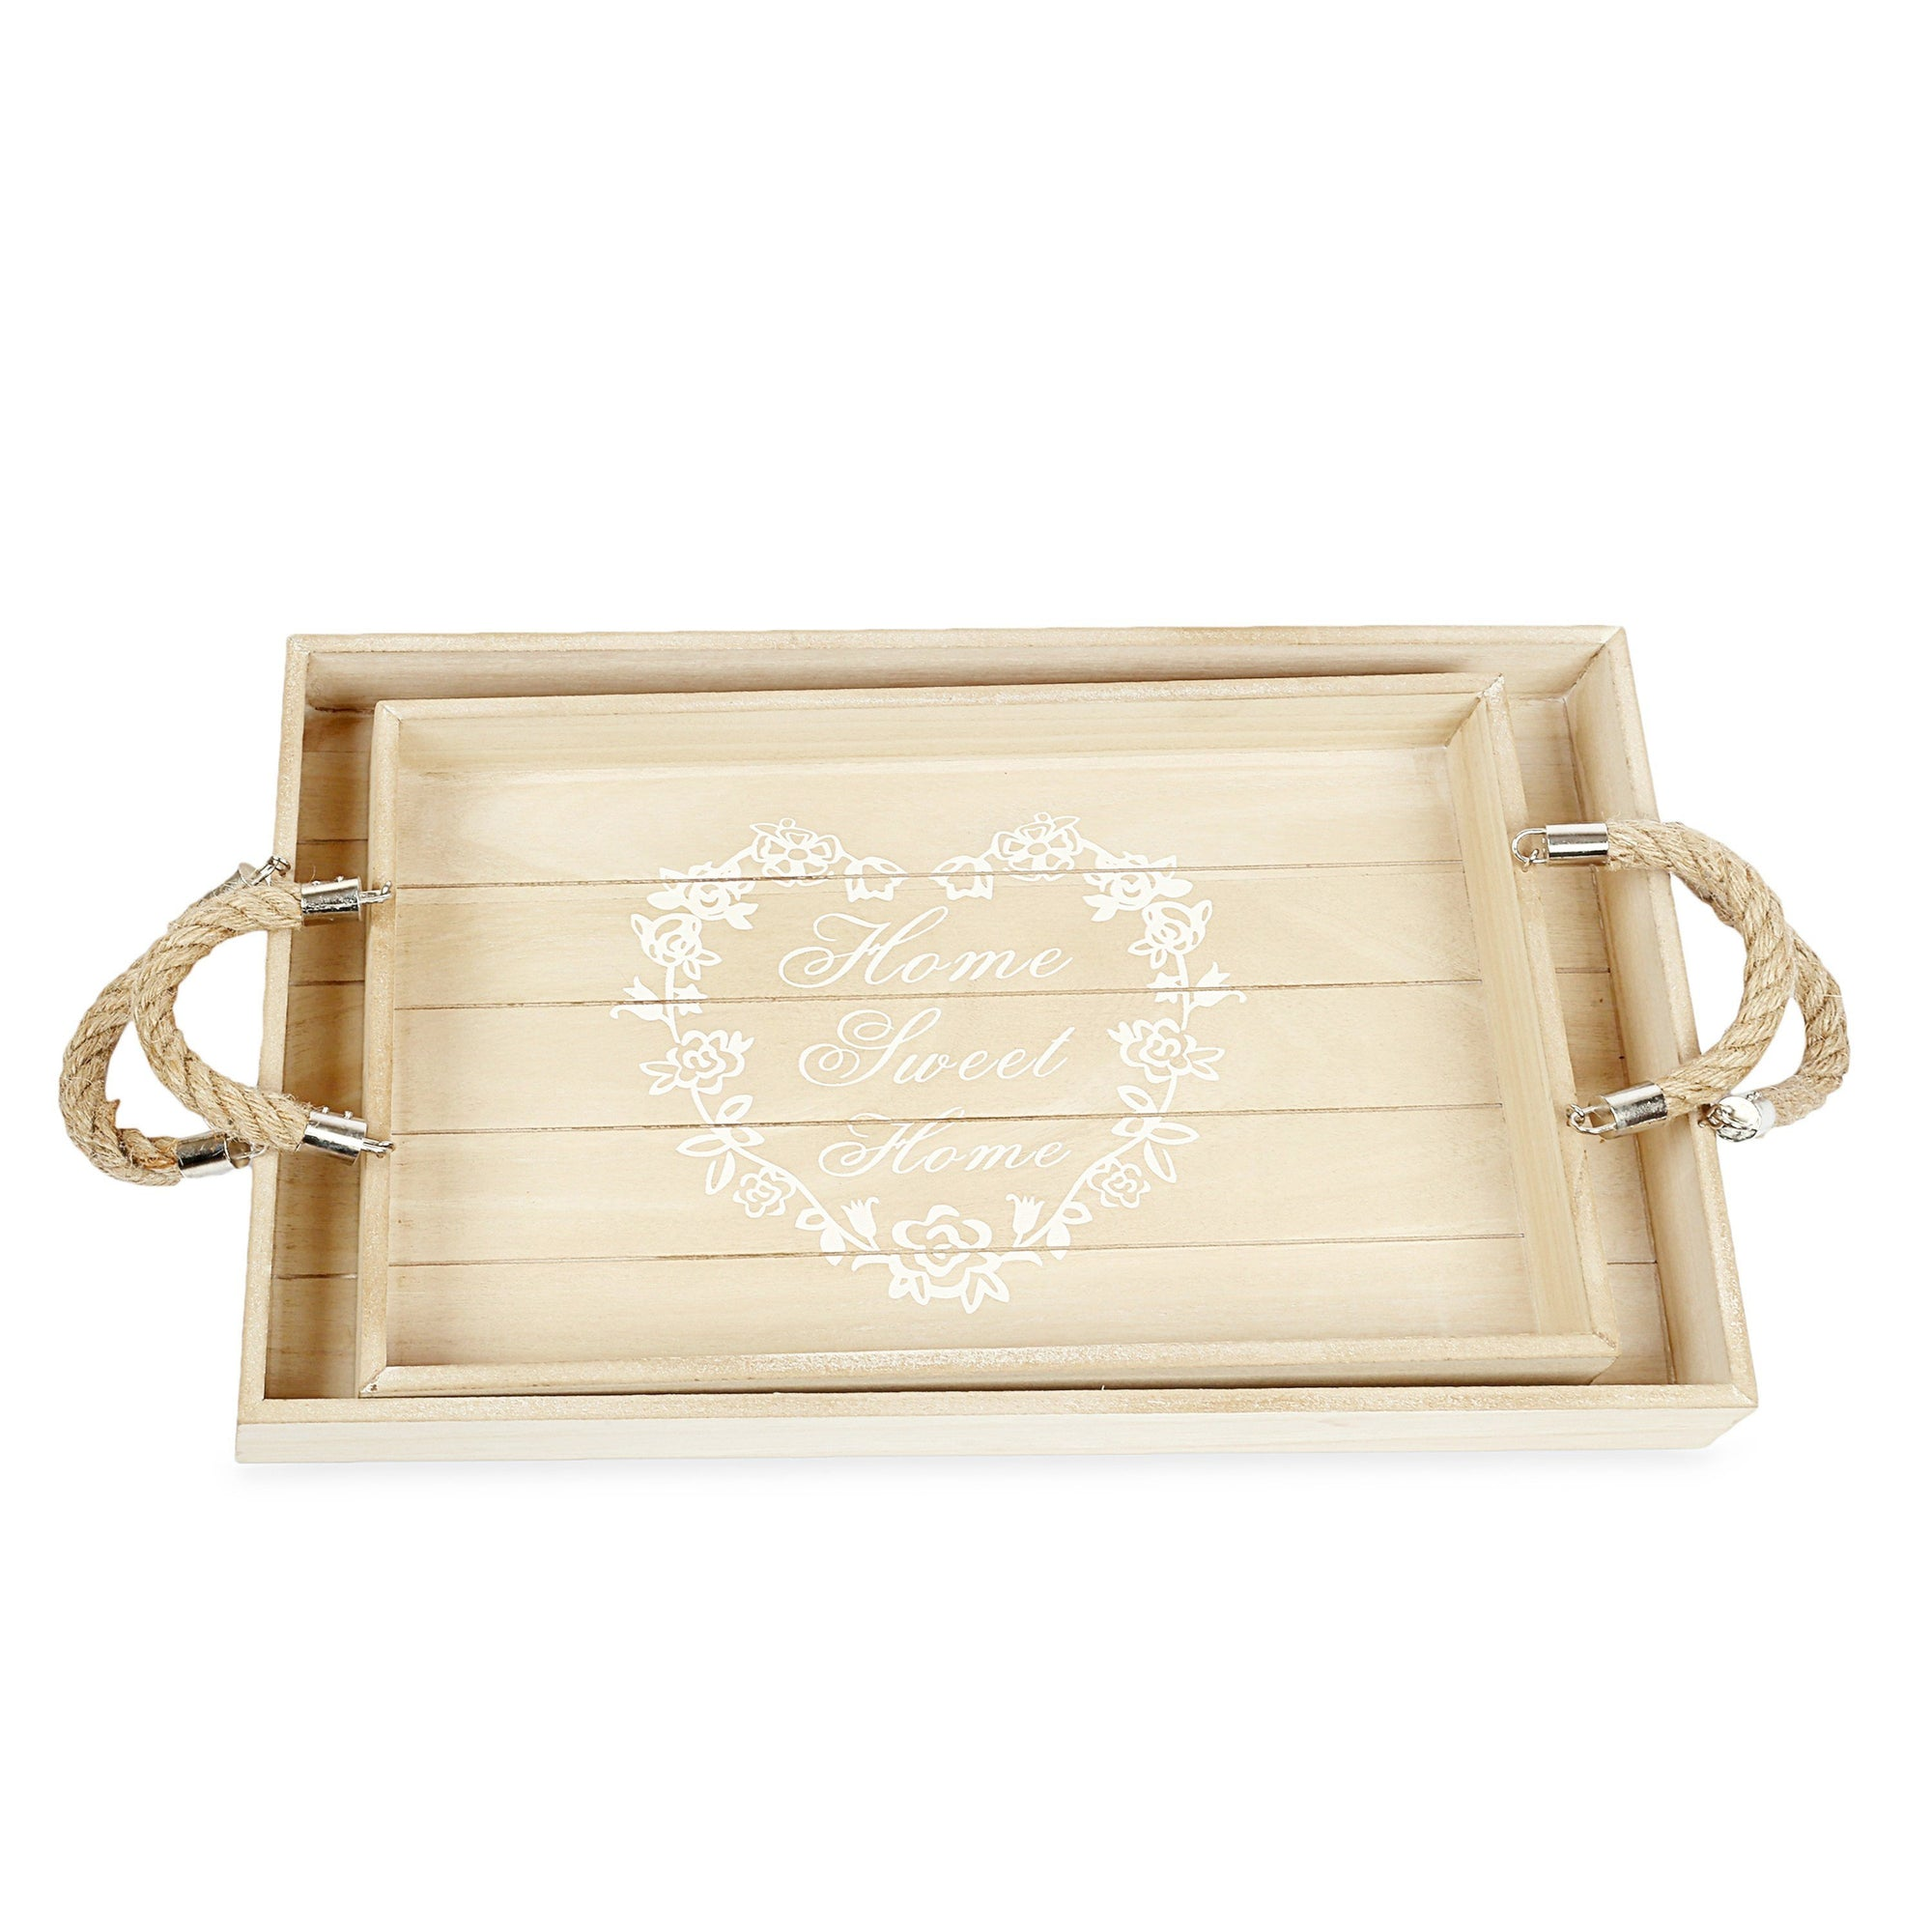 Decorative Wooden Home Design Tray (Set Of 2)